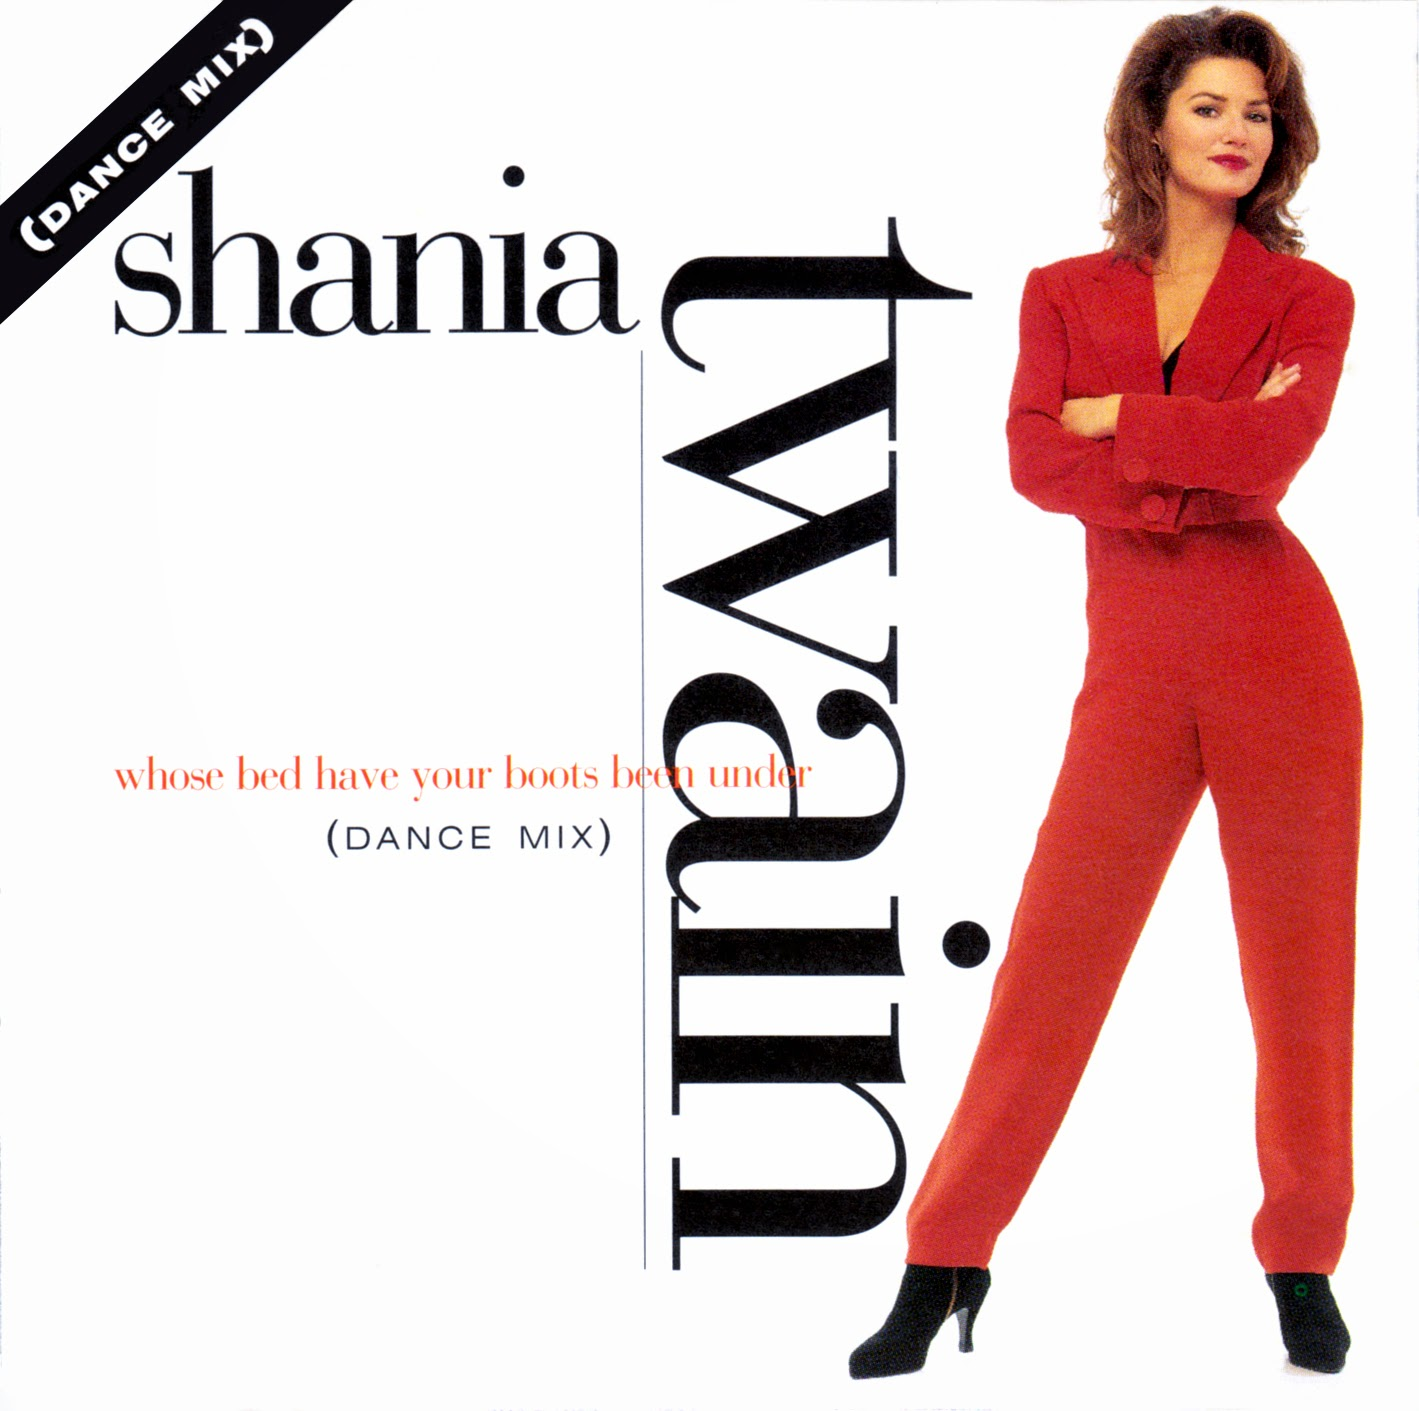 twain singles Shania twain, oc is a canadian singer and songwriter  come on over produced twelve singles, including you're still the one,  from this.